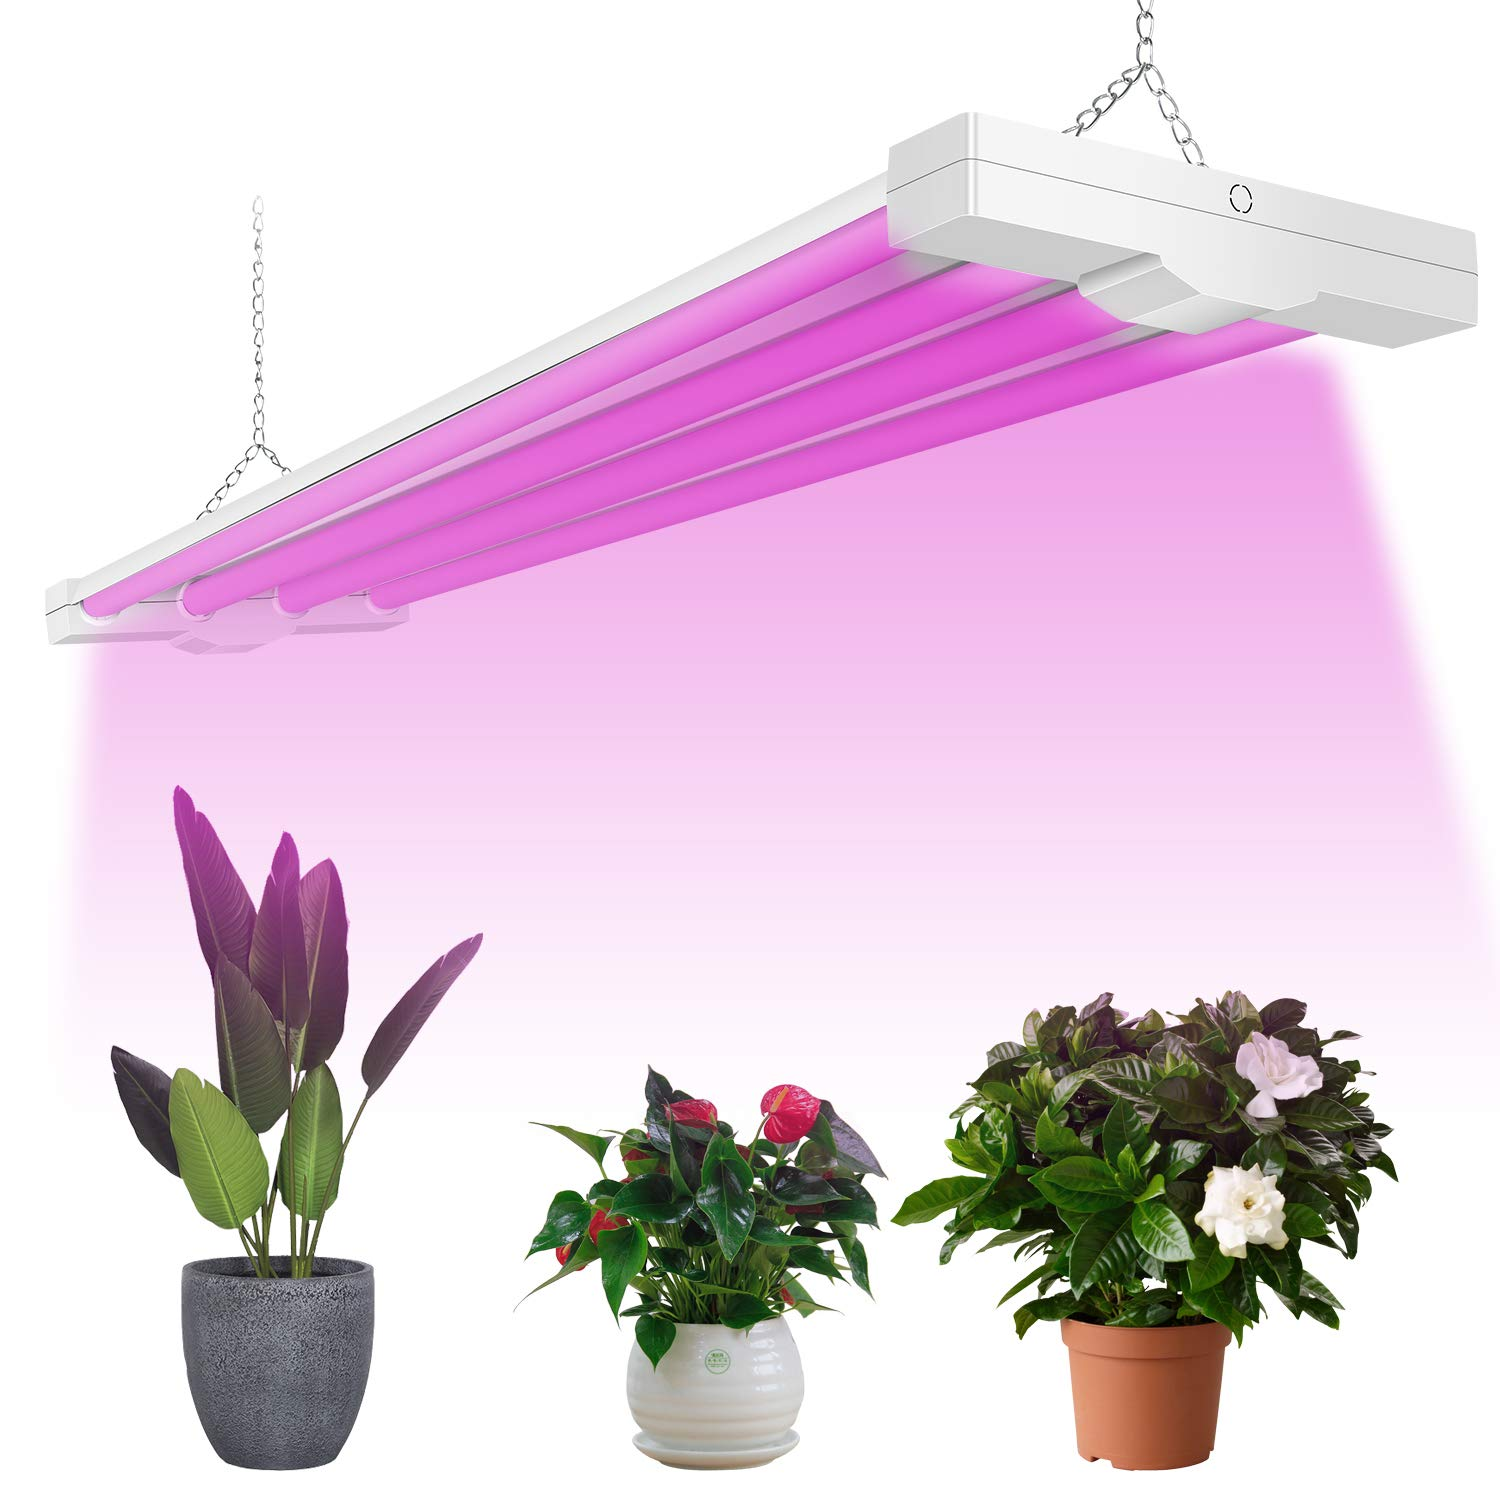 Details About 4ft Led Grow Light Full Spectrum Integrated Growing Fixtures For Flower 50w 80w